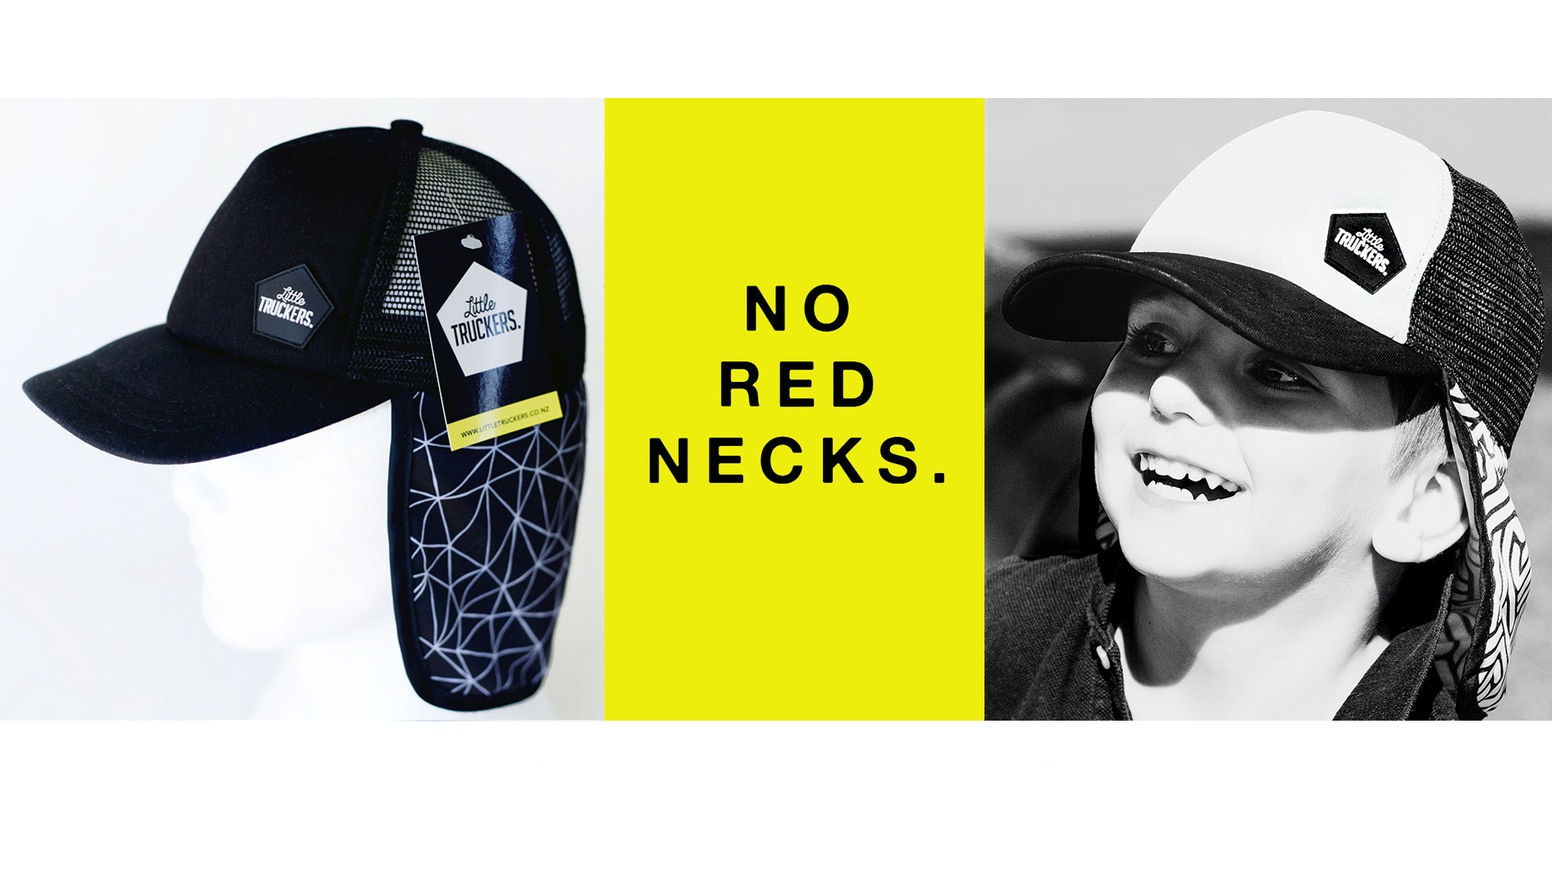 f6cc0f56b0d Protect little ears   necks with Little Truckers. Designed with neck ear  flap